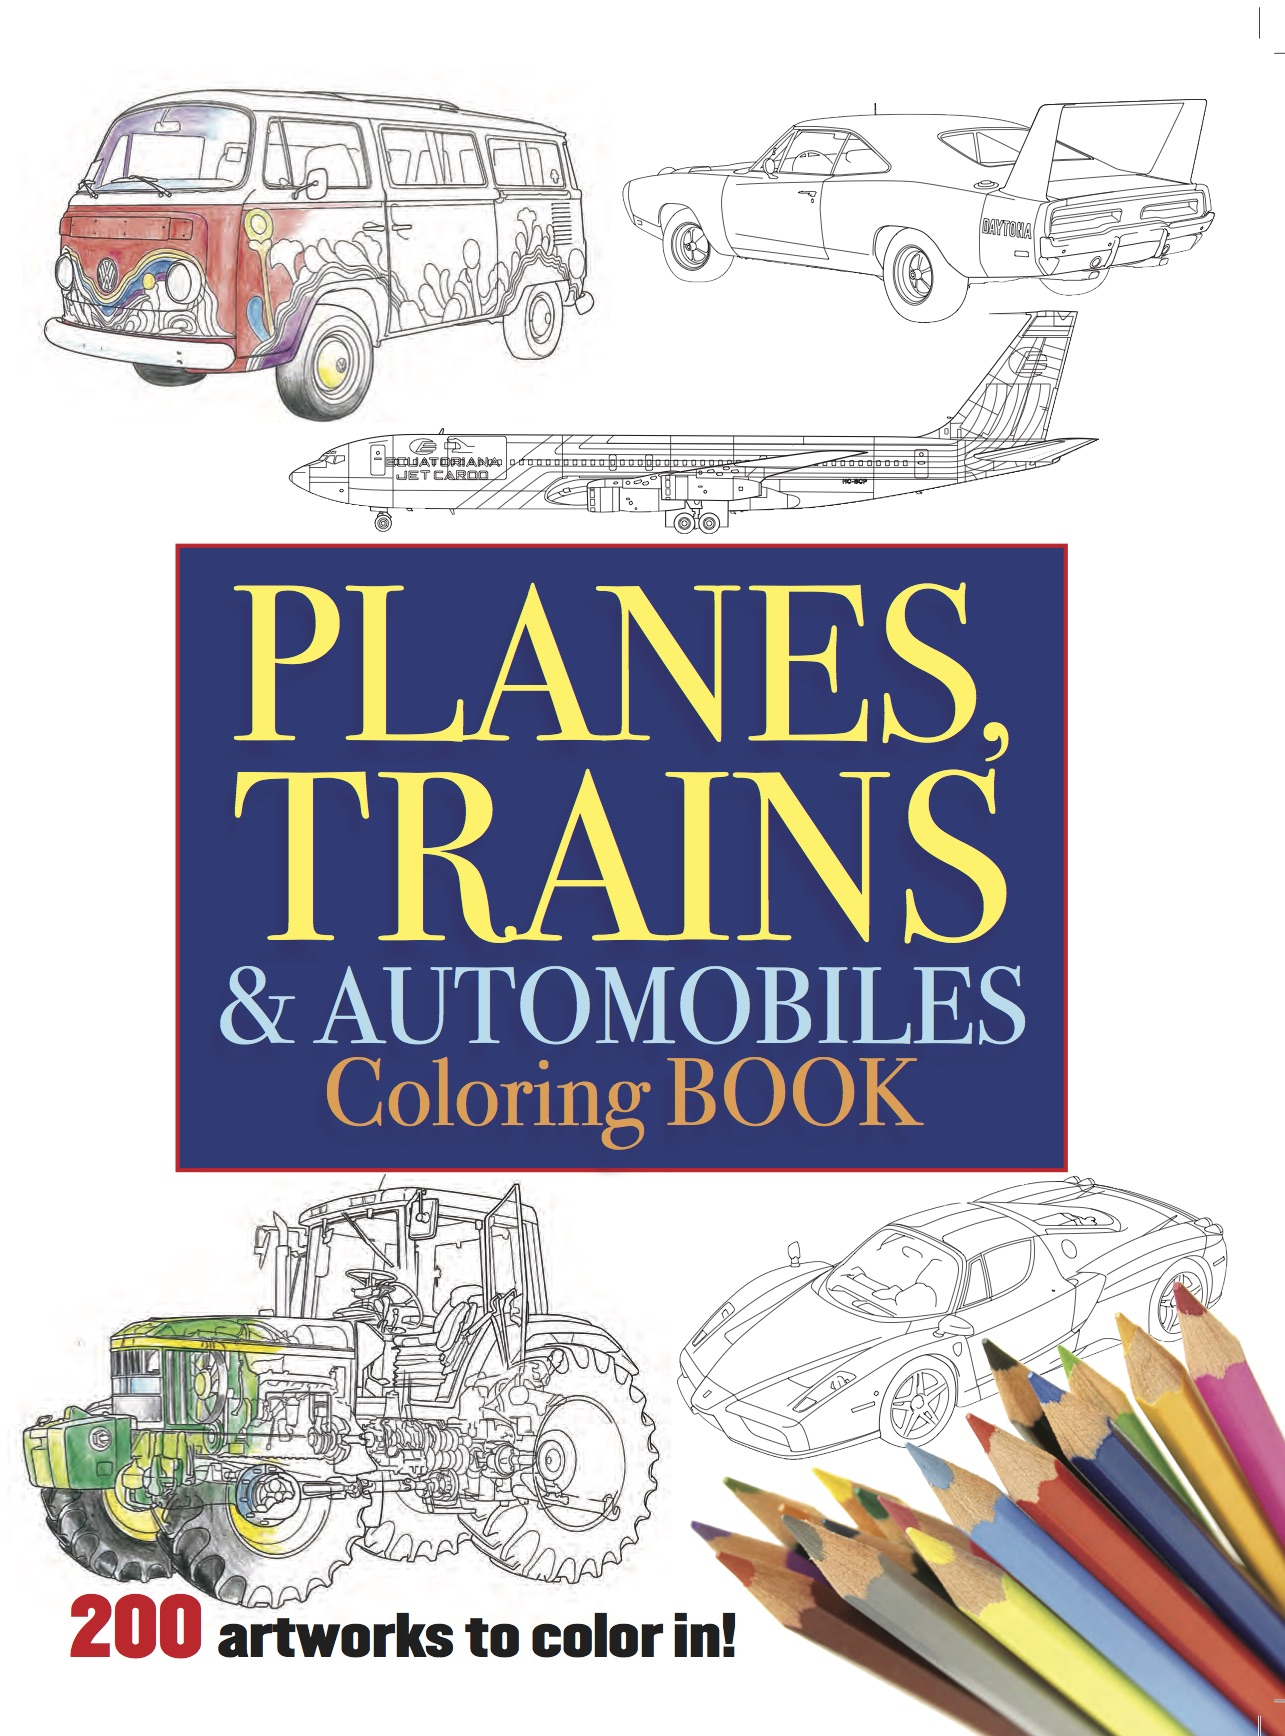 Planes, Trains & Automobiles Colouring Book